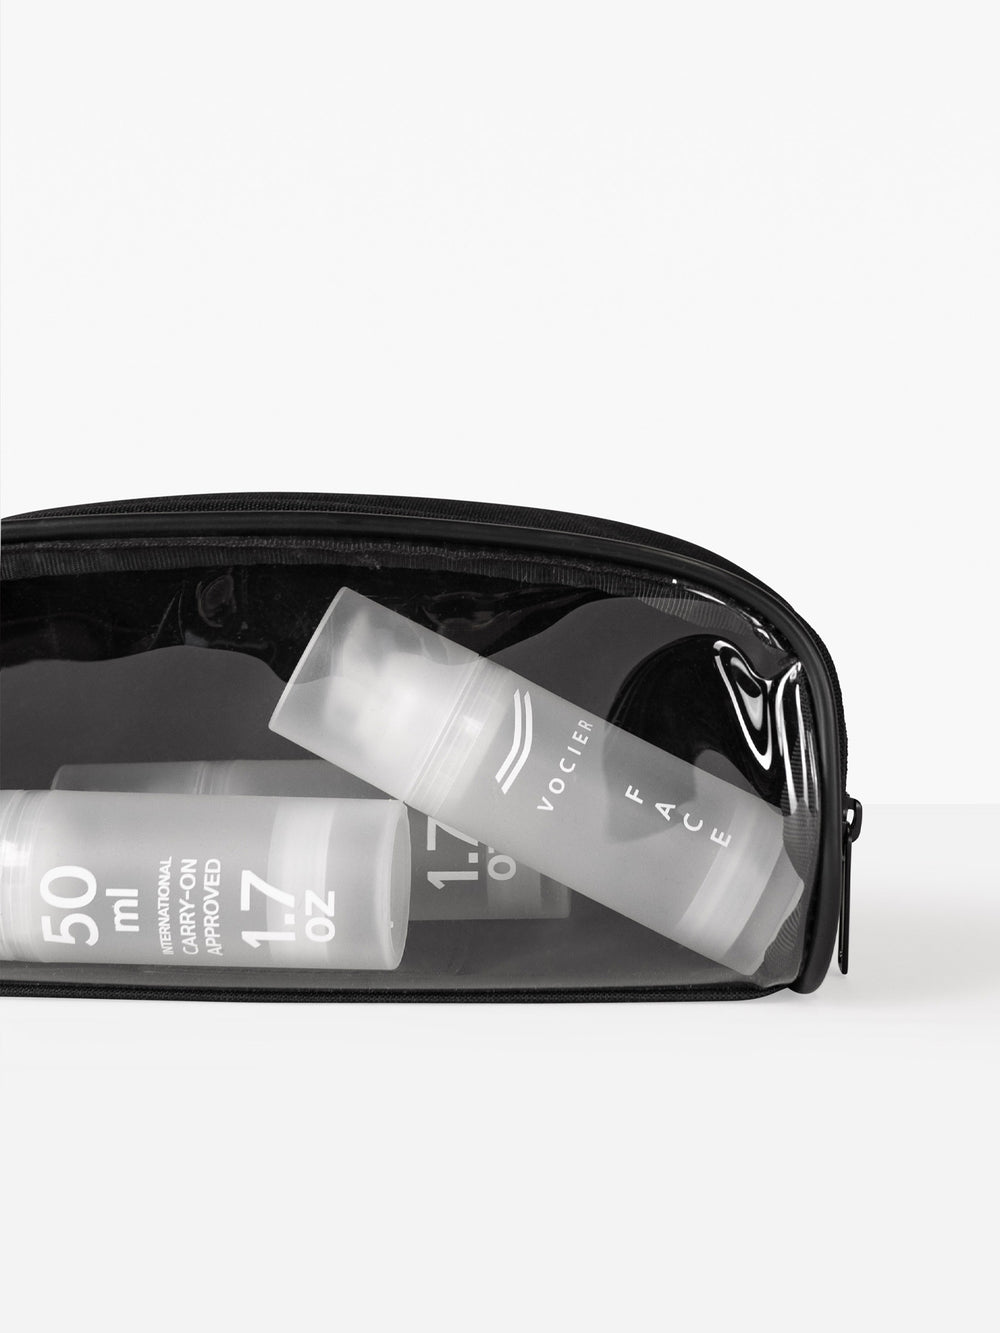 legacy dopp kit with clear window